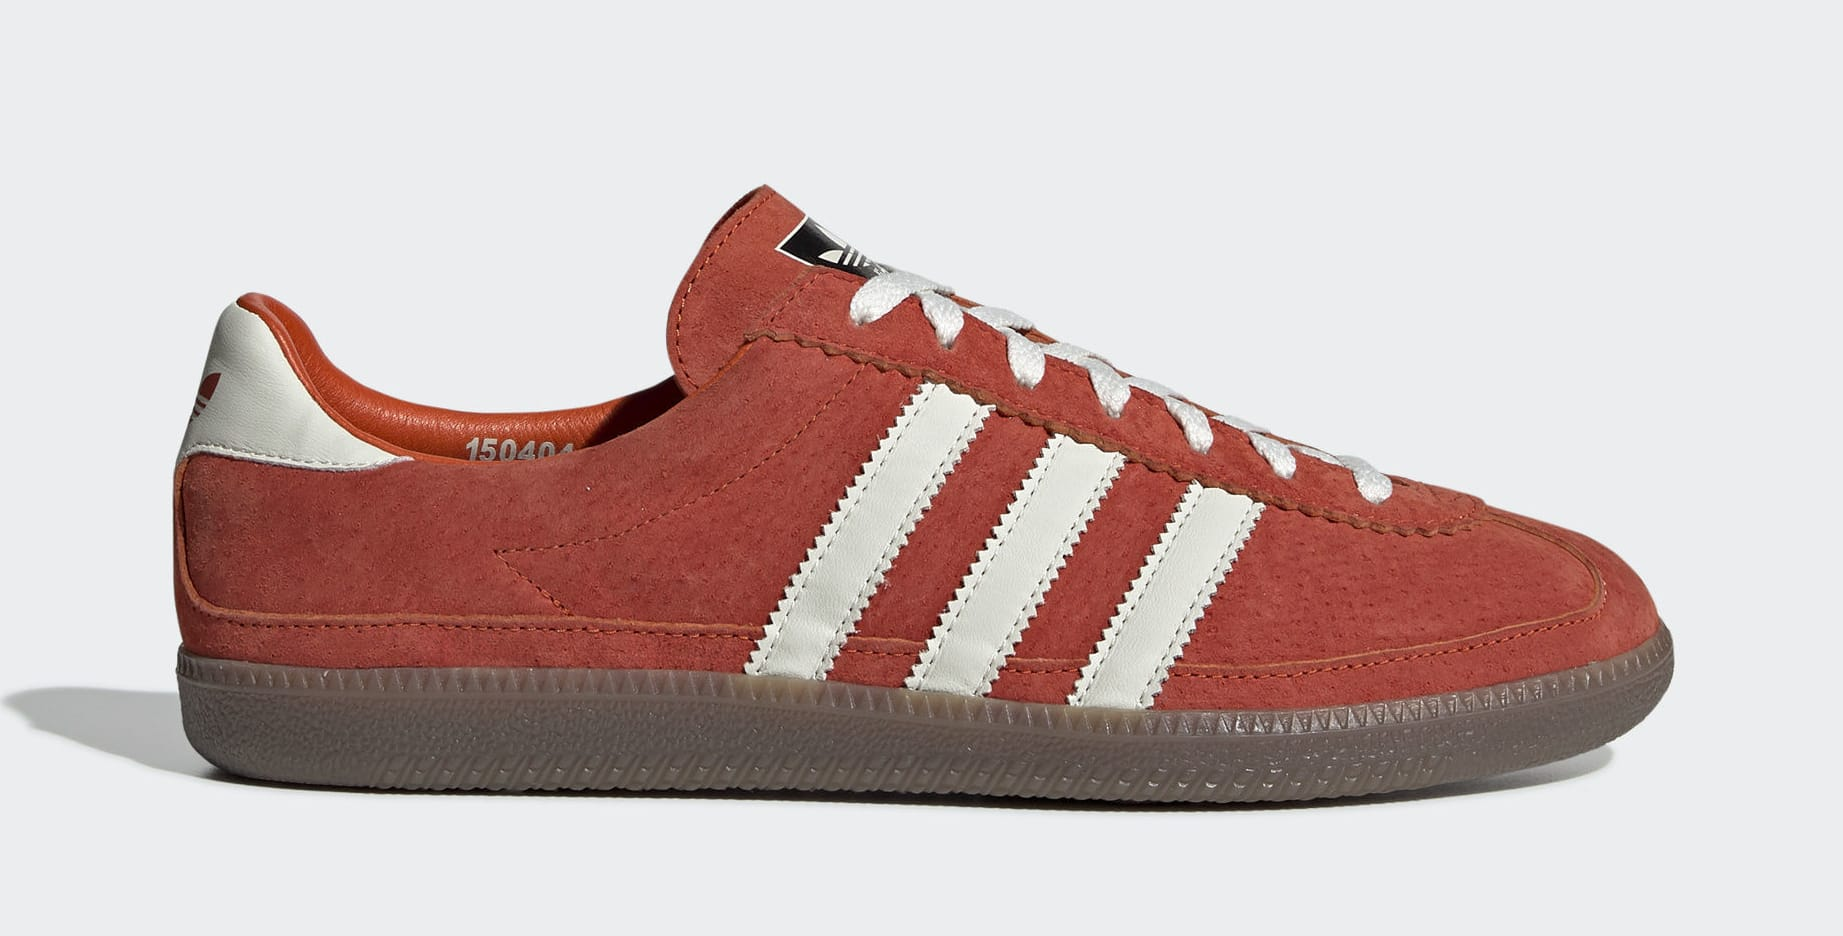 Adidas Whalley Spezial 'Red' Lateral F35716